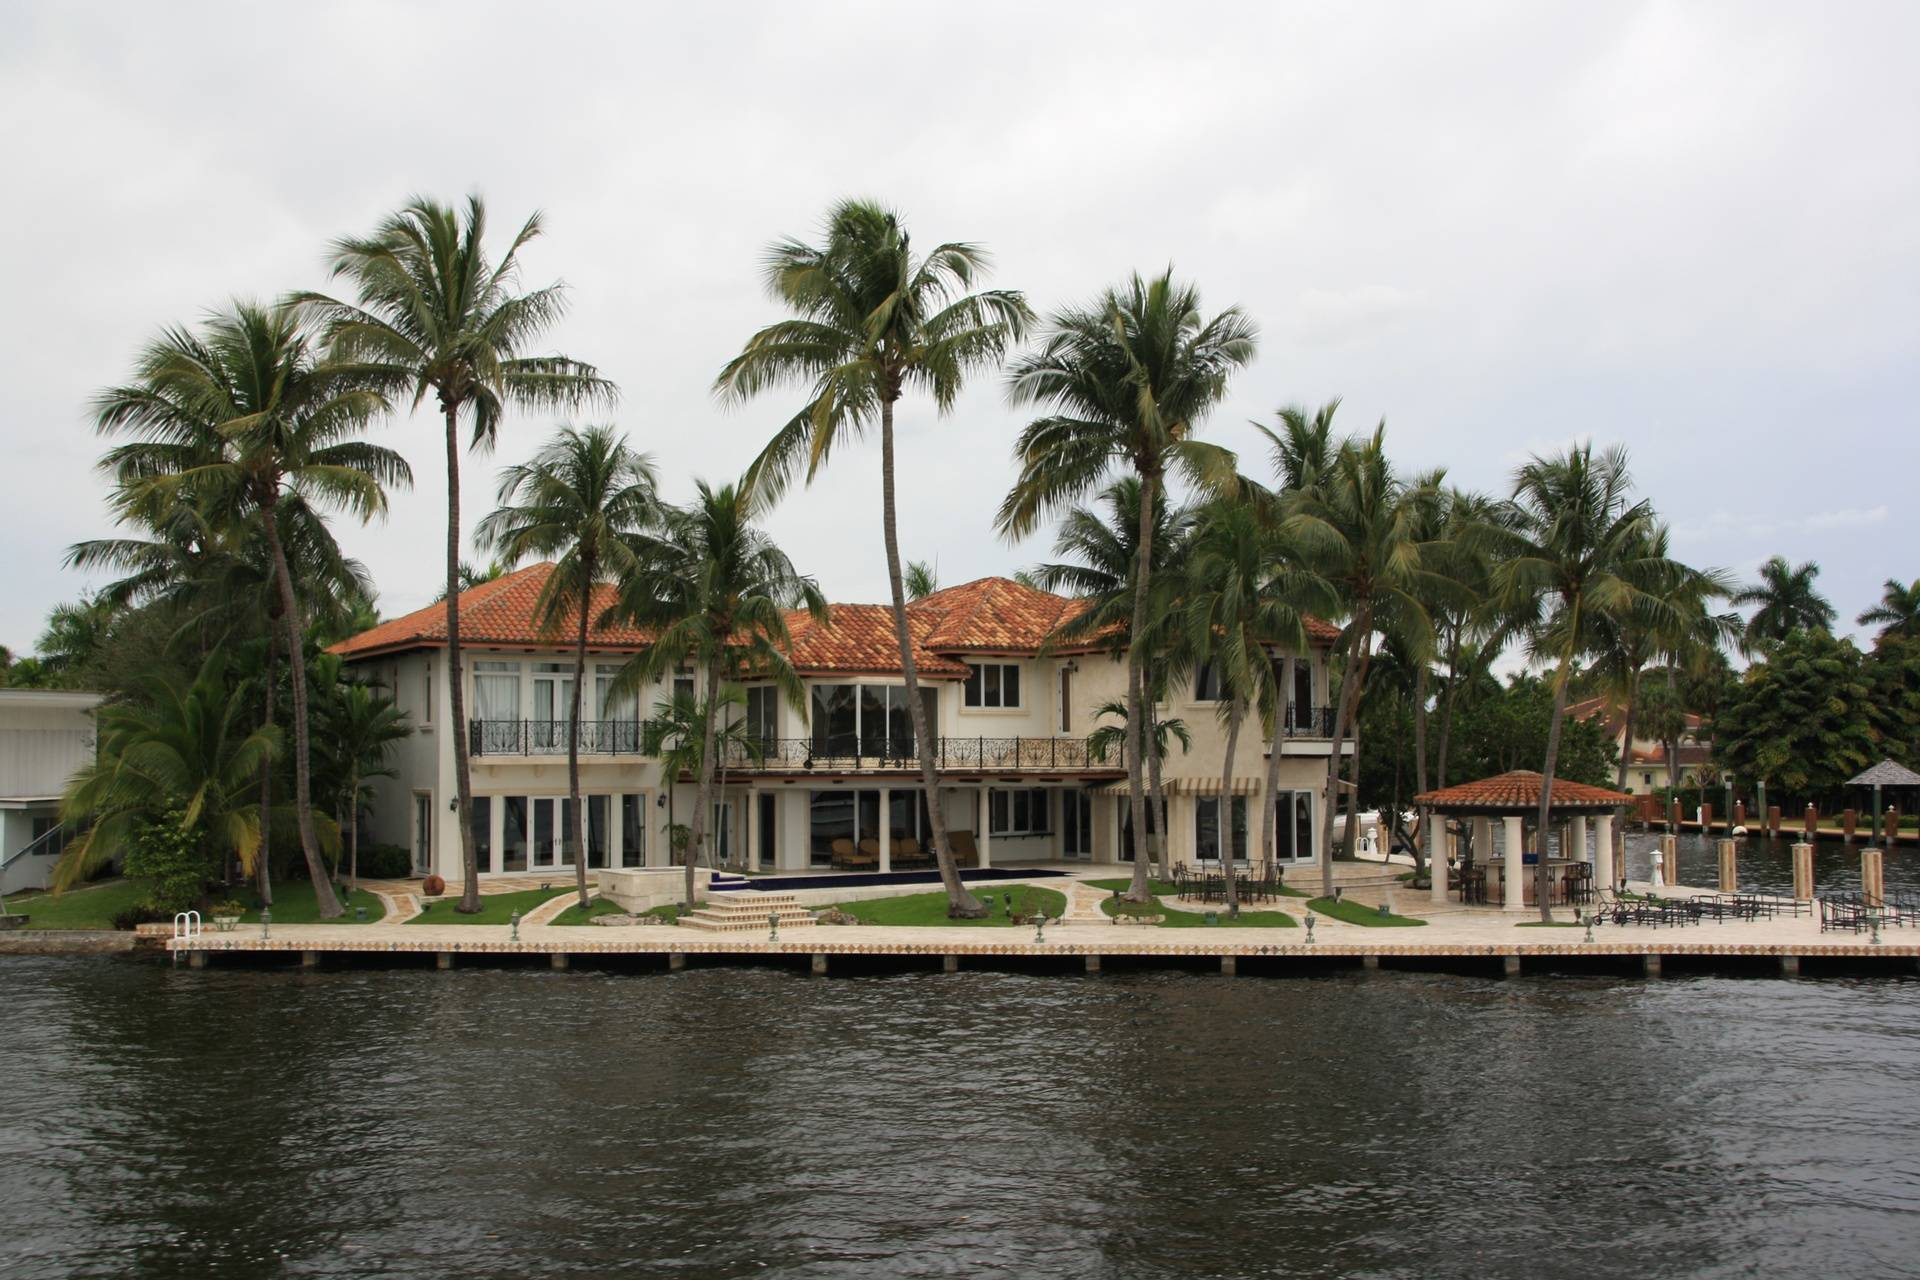 House in Fort Lauderdale FL